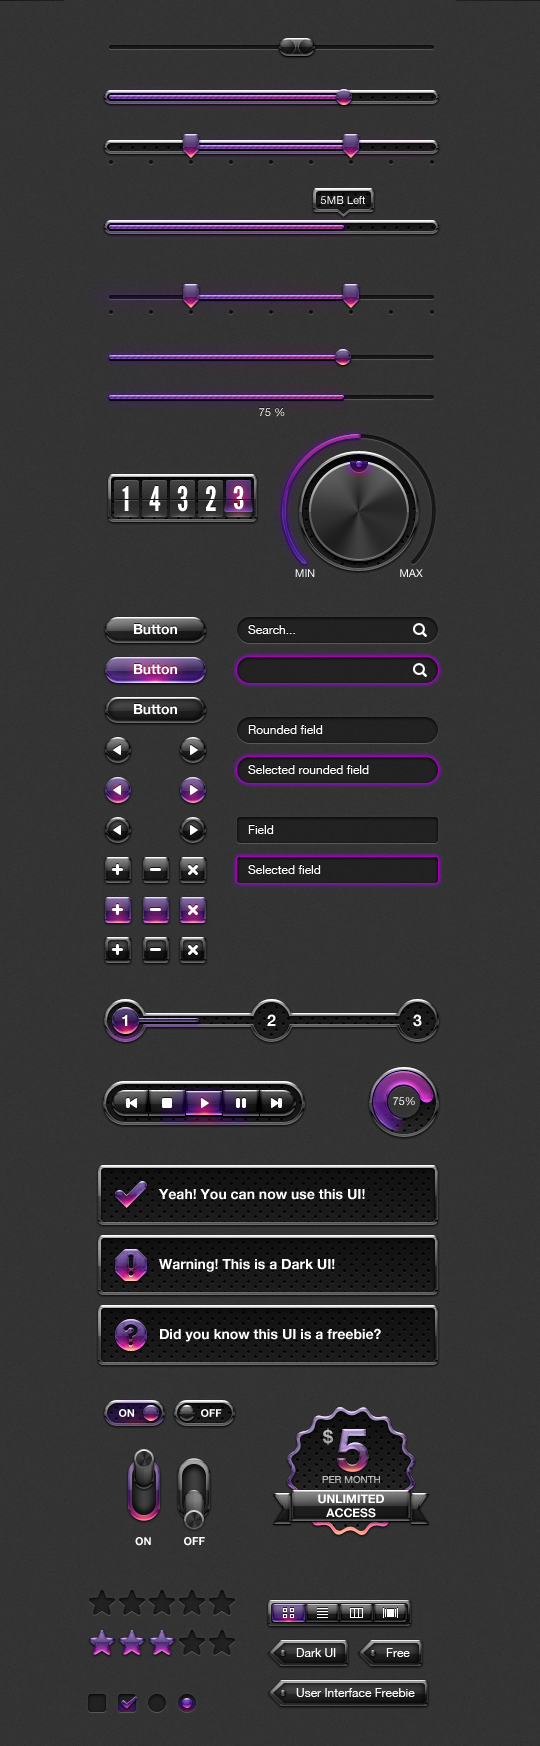 Purple Web UI Elements Kit PSD freebie Web Resources, Web Elements, Web Design Elements, Web, volume control, view/grid bar, User Interface, unique, ui set, ui kit, UI elements, UI, toggles, Tags, Switches, Stylish, Steps, star rating, Sliders, Shapes, set, selector sliders, search field, Resources, Radio Buttons, Quality, purple ui kit, purple, Psd Templates, PSD Sources, psd resources, PSD images, psd free download, psd free, PSD file, psd elements, psd download, PSD, Progress Bar, Player, Photoshop, original, new, Modern, Layered PSDs, Layered PSD, Kit, Interface, input fields, GUI Set, GUI kit, GUI, Graphics, Graphical User Interface, Glossy, Fresh, Freebies, Free Resources, Free PSD, free download, Free, Elements, download psd, download free psd, Download, detailed, Design Resources, Design Elements, Design, Creative, Counter, Clean, Check Boxes, Buttons, badge psd, alerts, Adobe Photoshop,